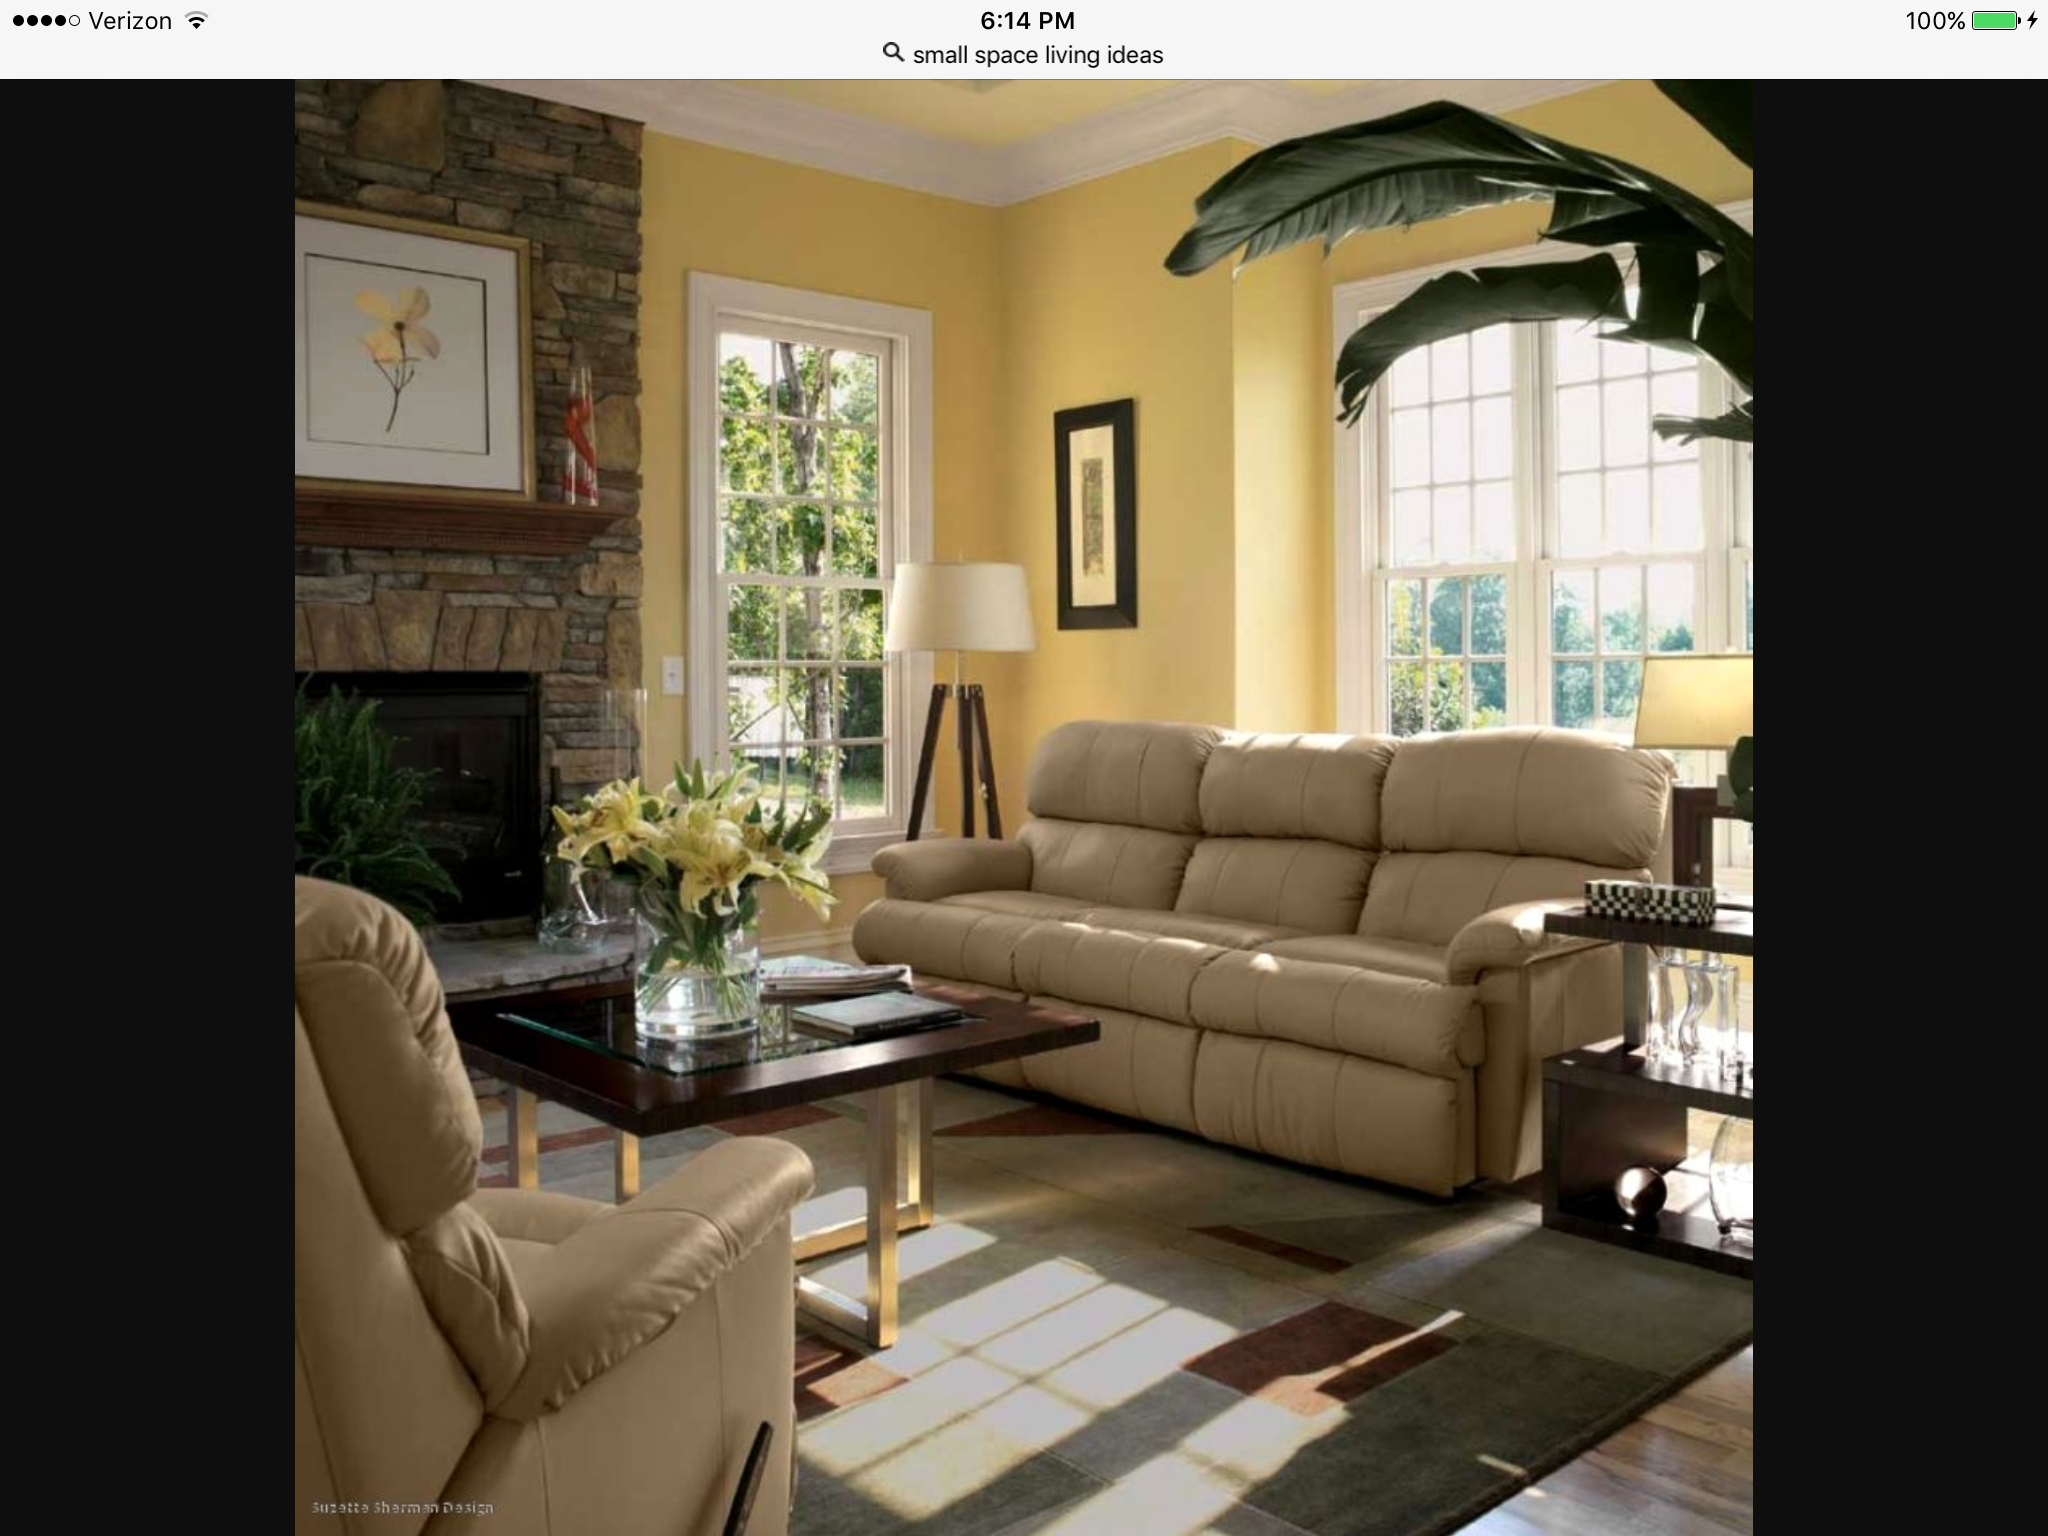 Design Living Room Online Pinkarla Kirchmangray On Decorating  Pinterest  Decorating